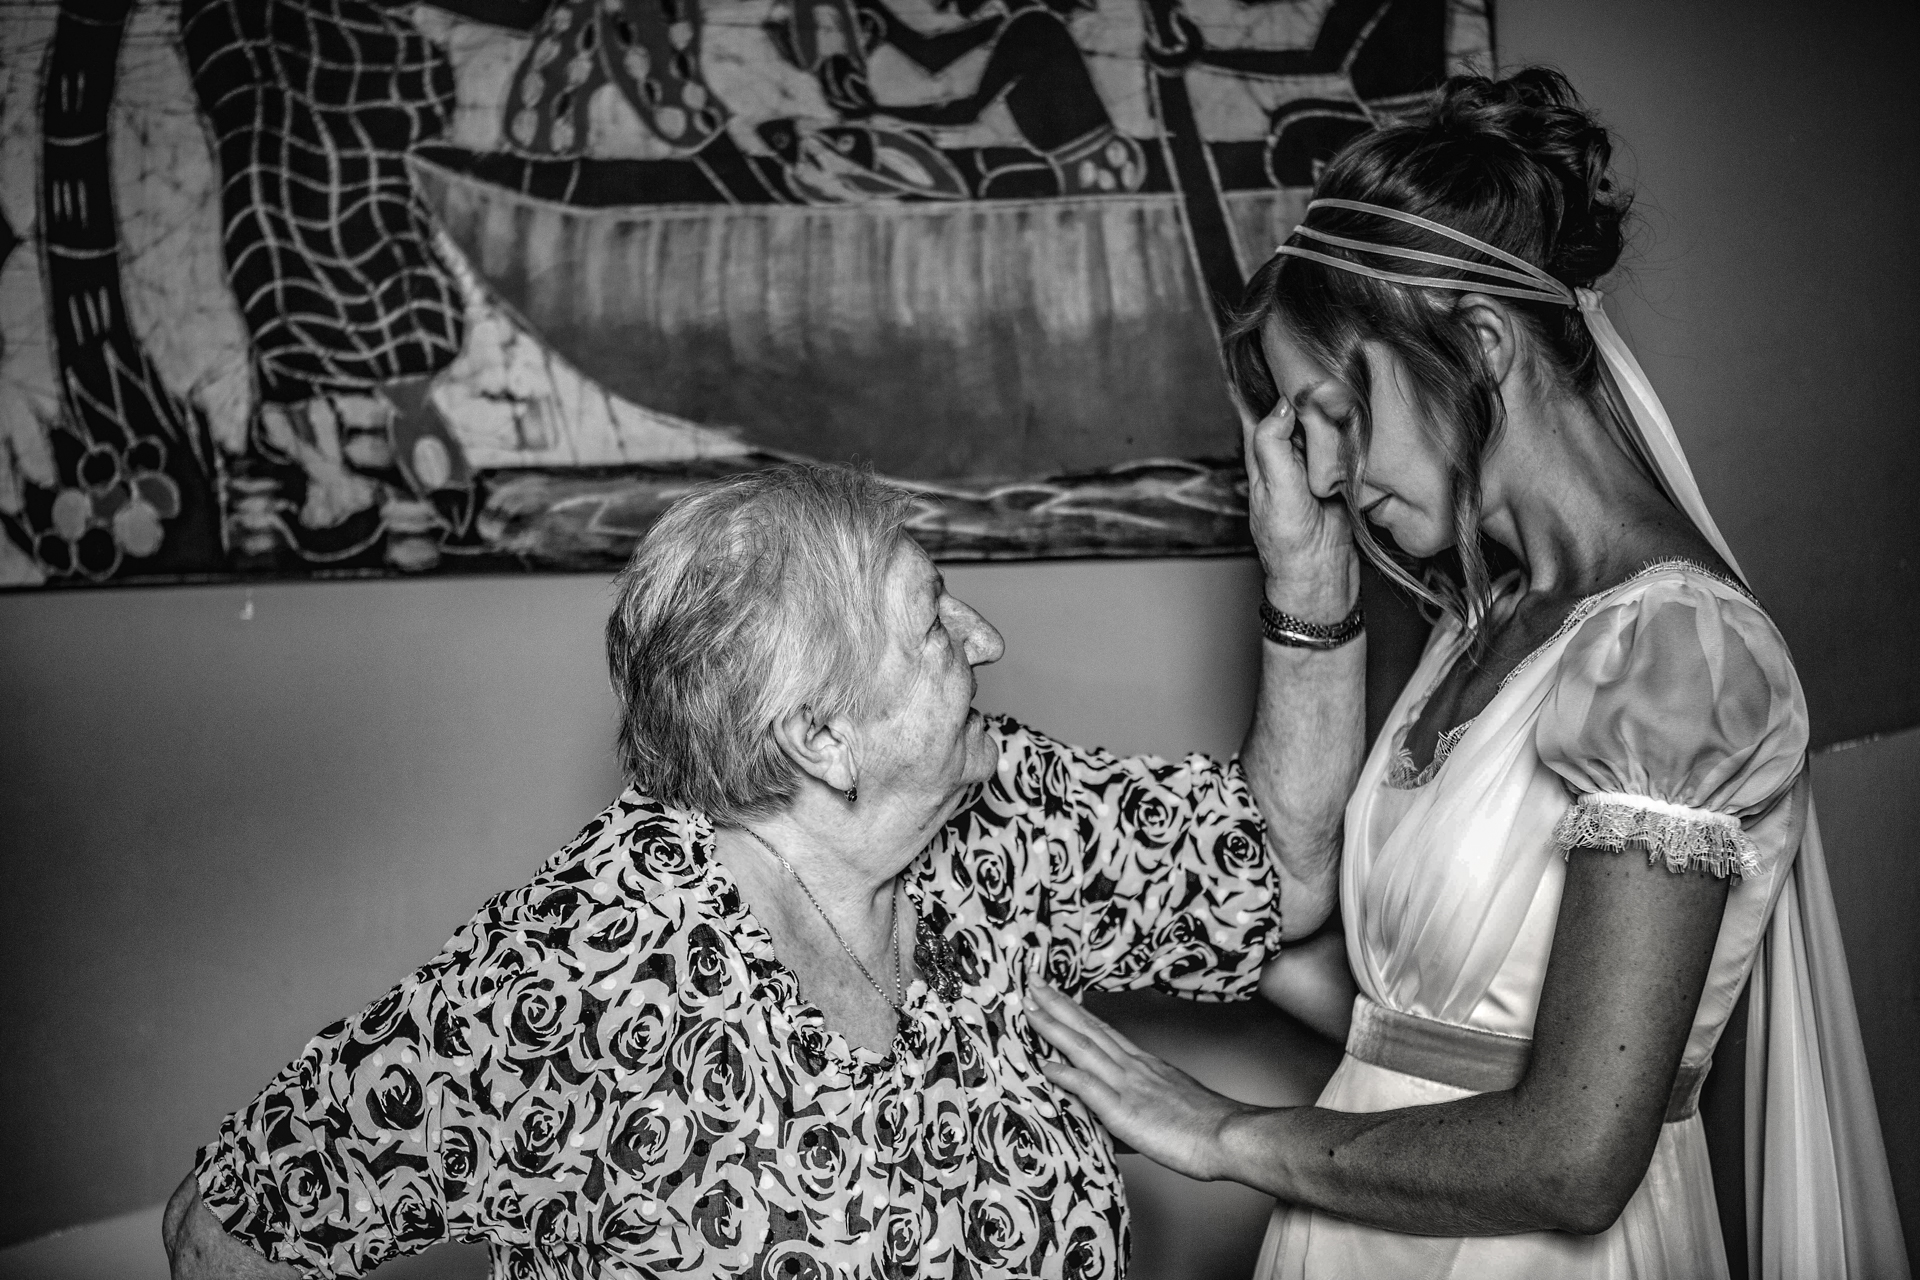 Destination Italian Wedding Photo in BW | The brides grandmother offers her a traditional Slovakian blessing